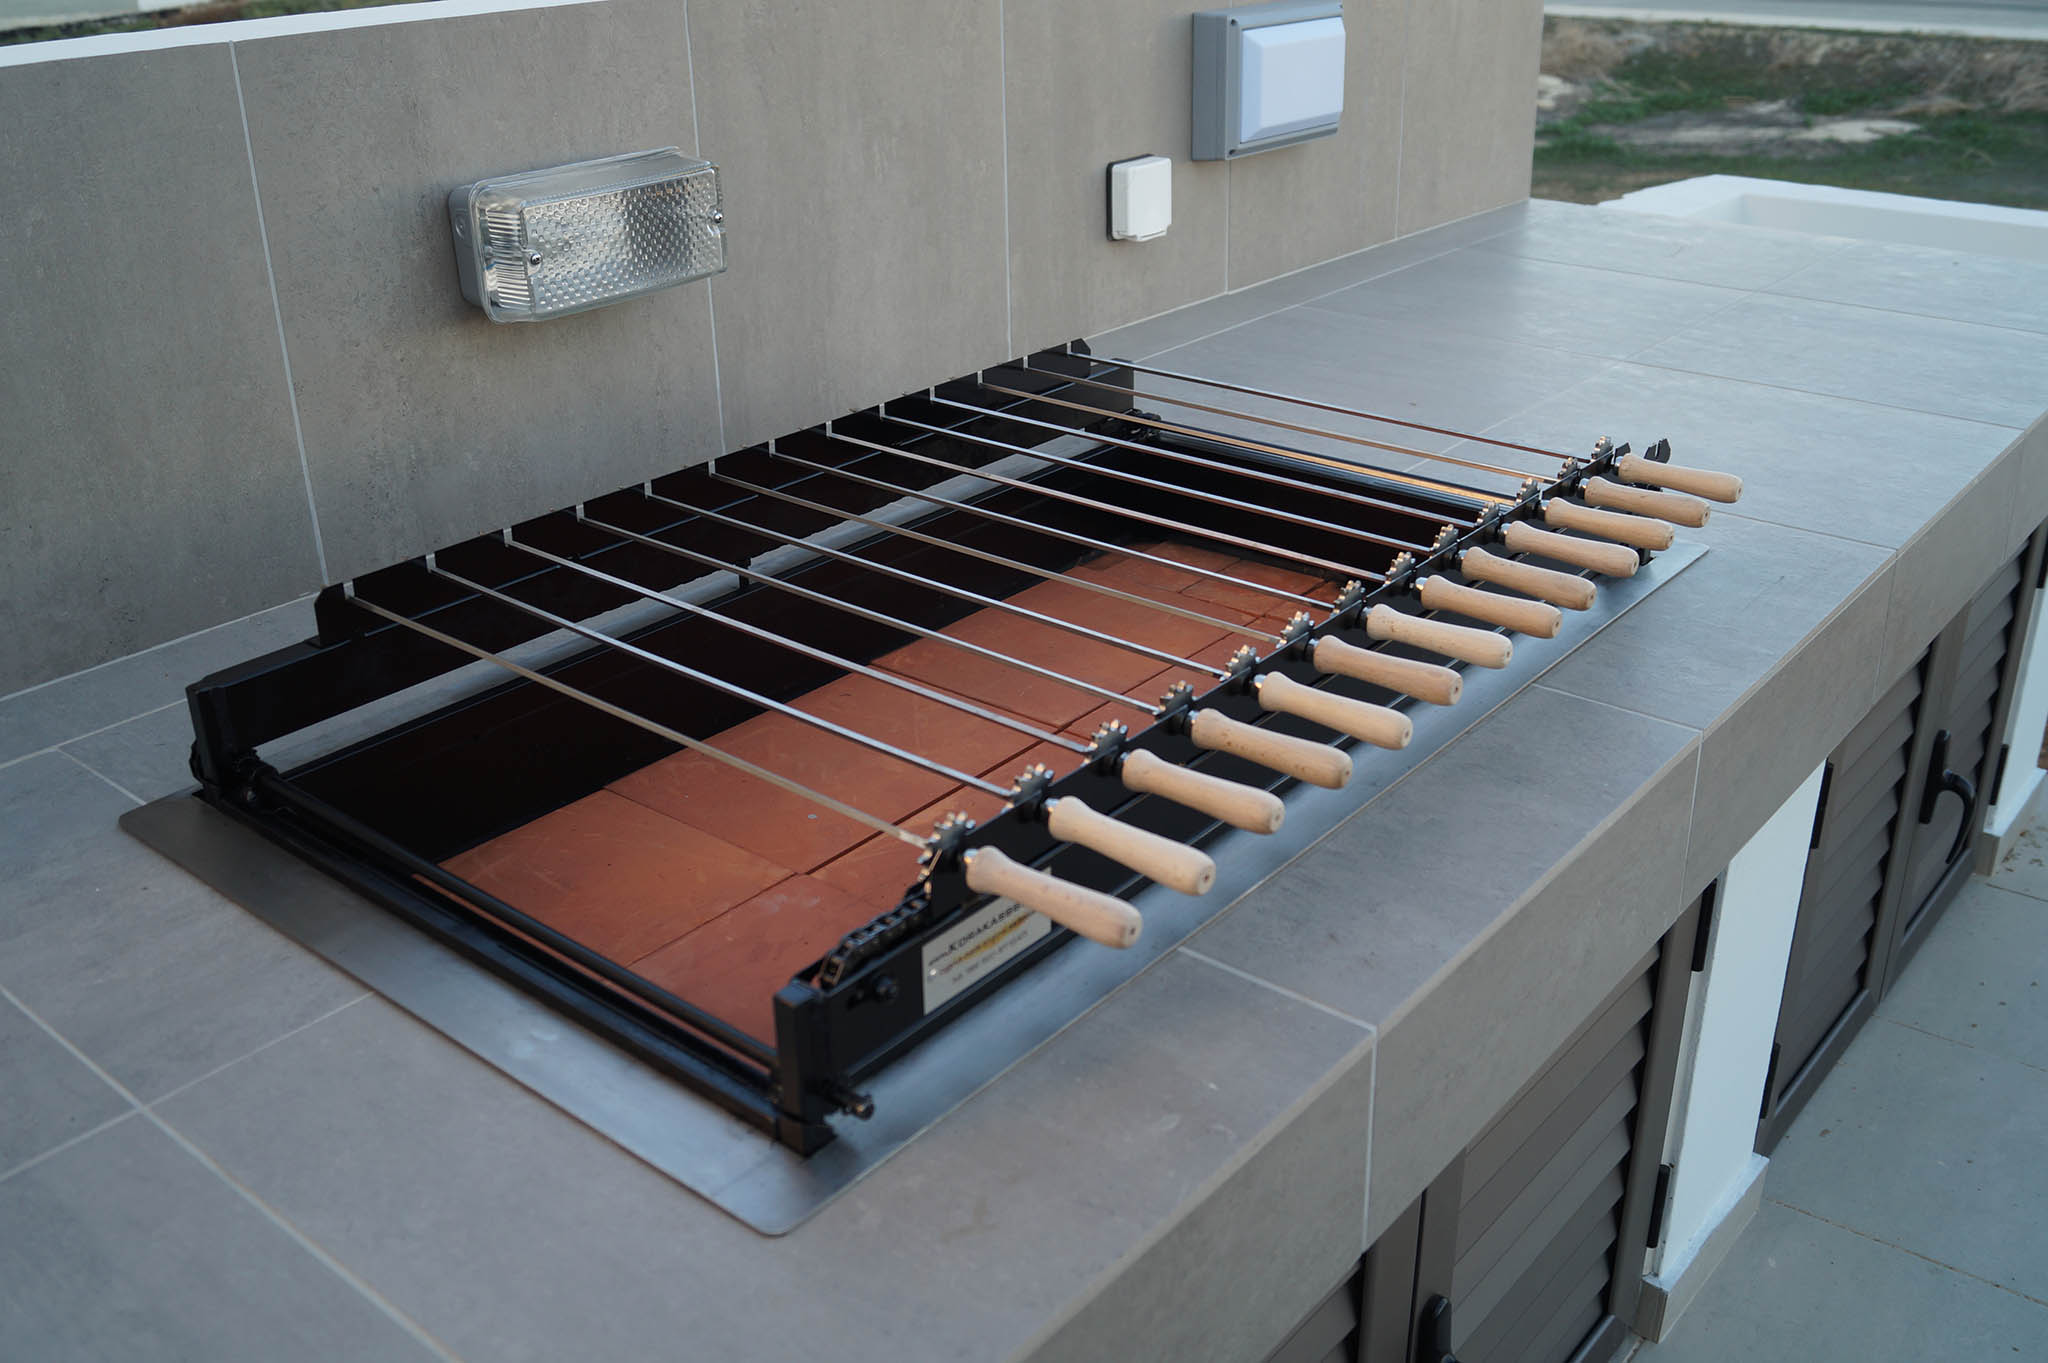 Bbq Foukou Barbeque And Grill Accessories In Cyprus